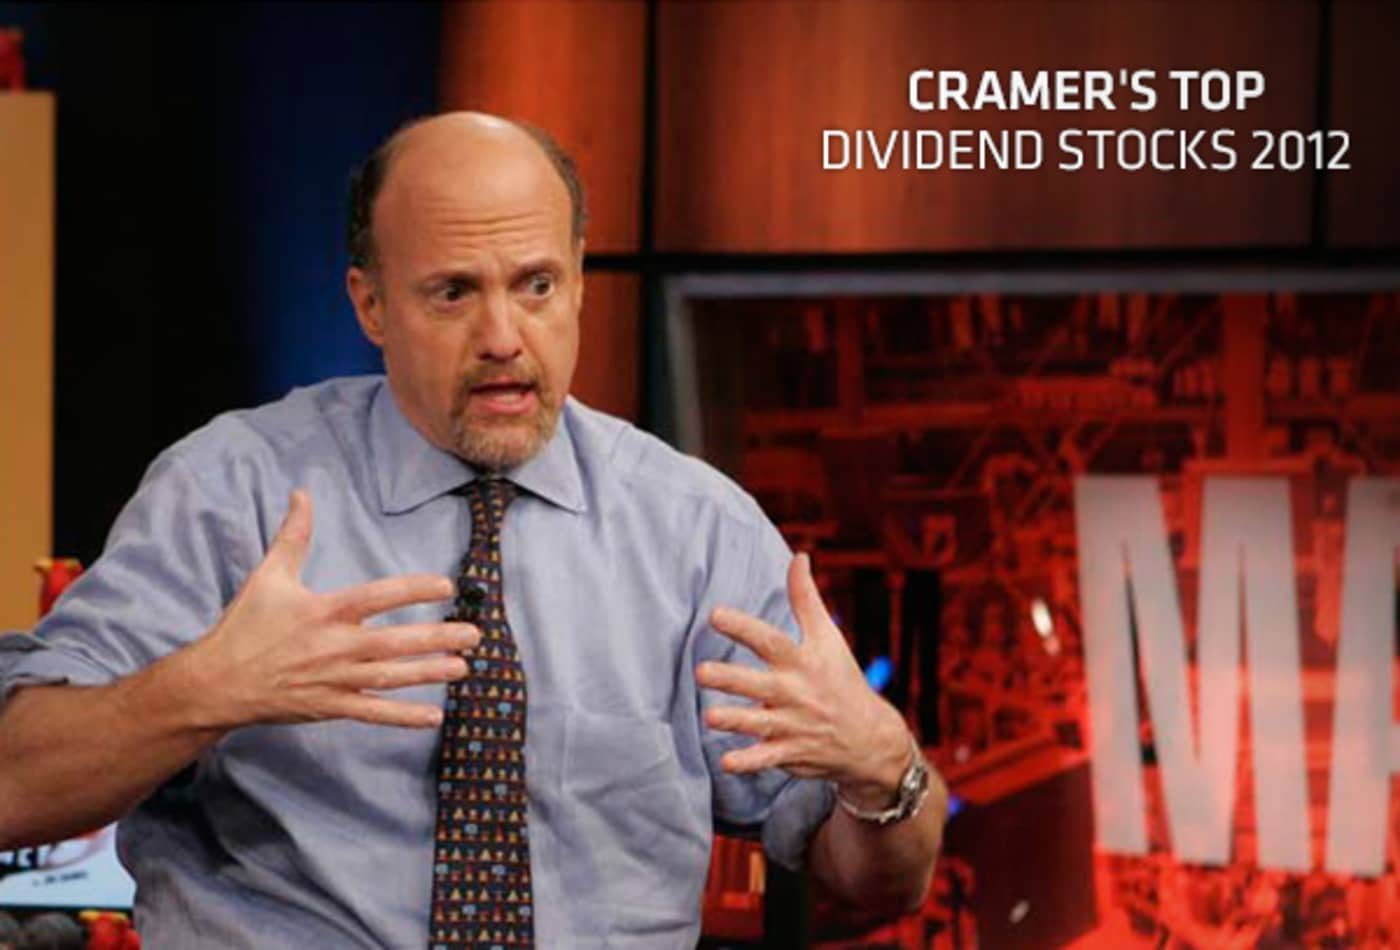 cramers-top-dividend-stocks-cover.jpg